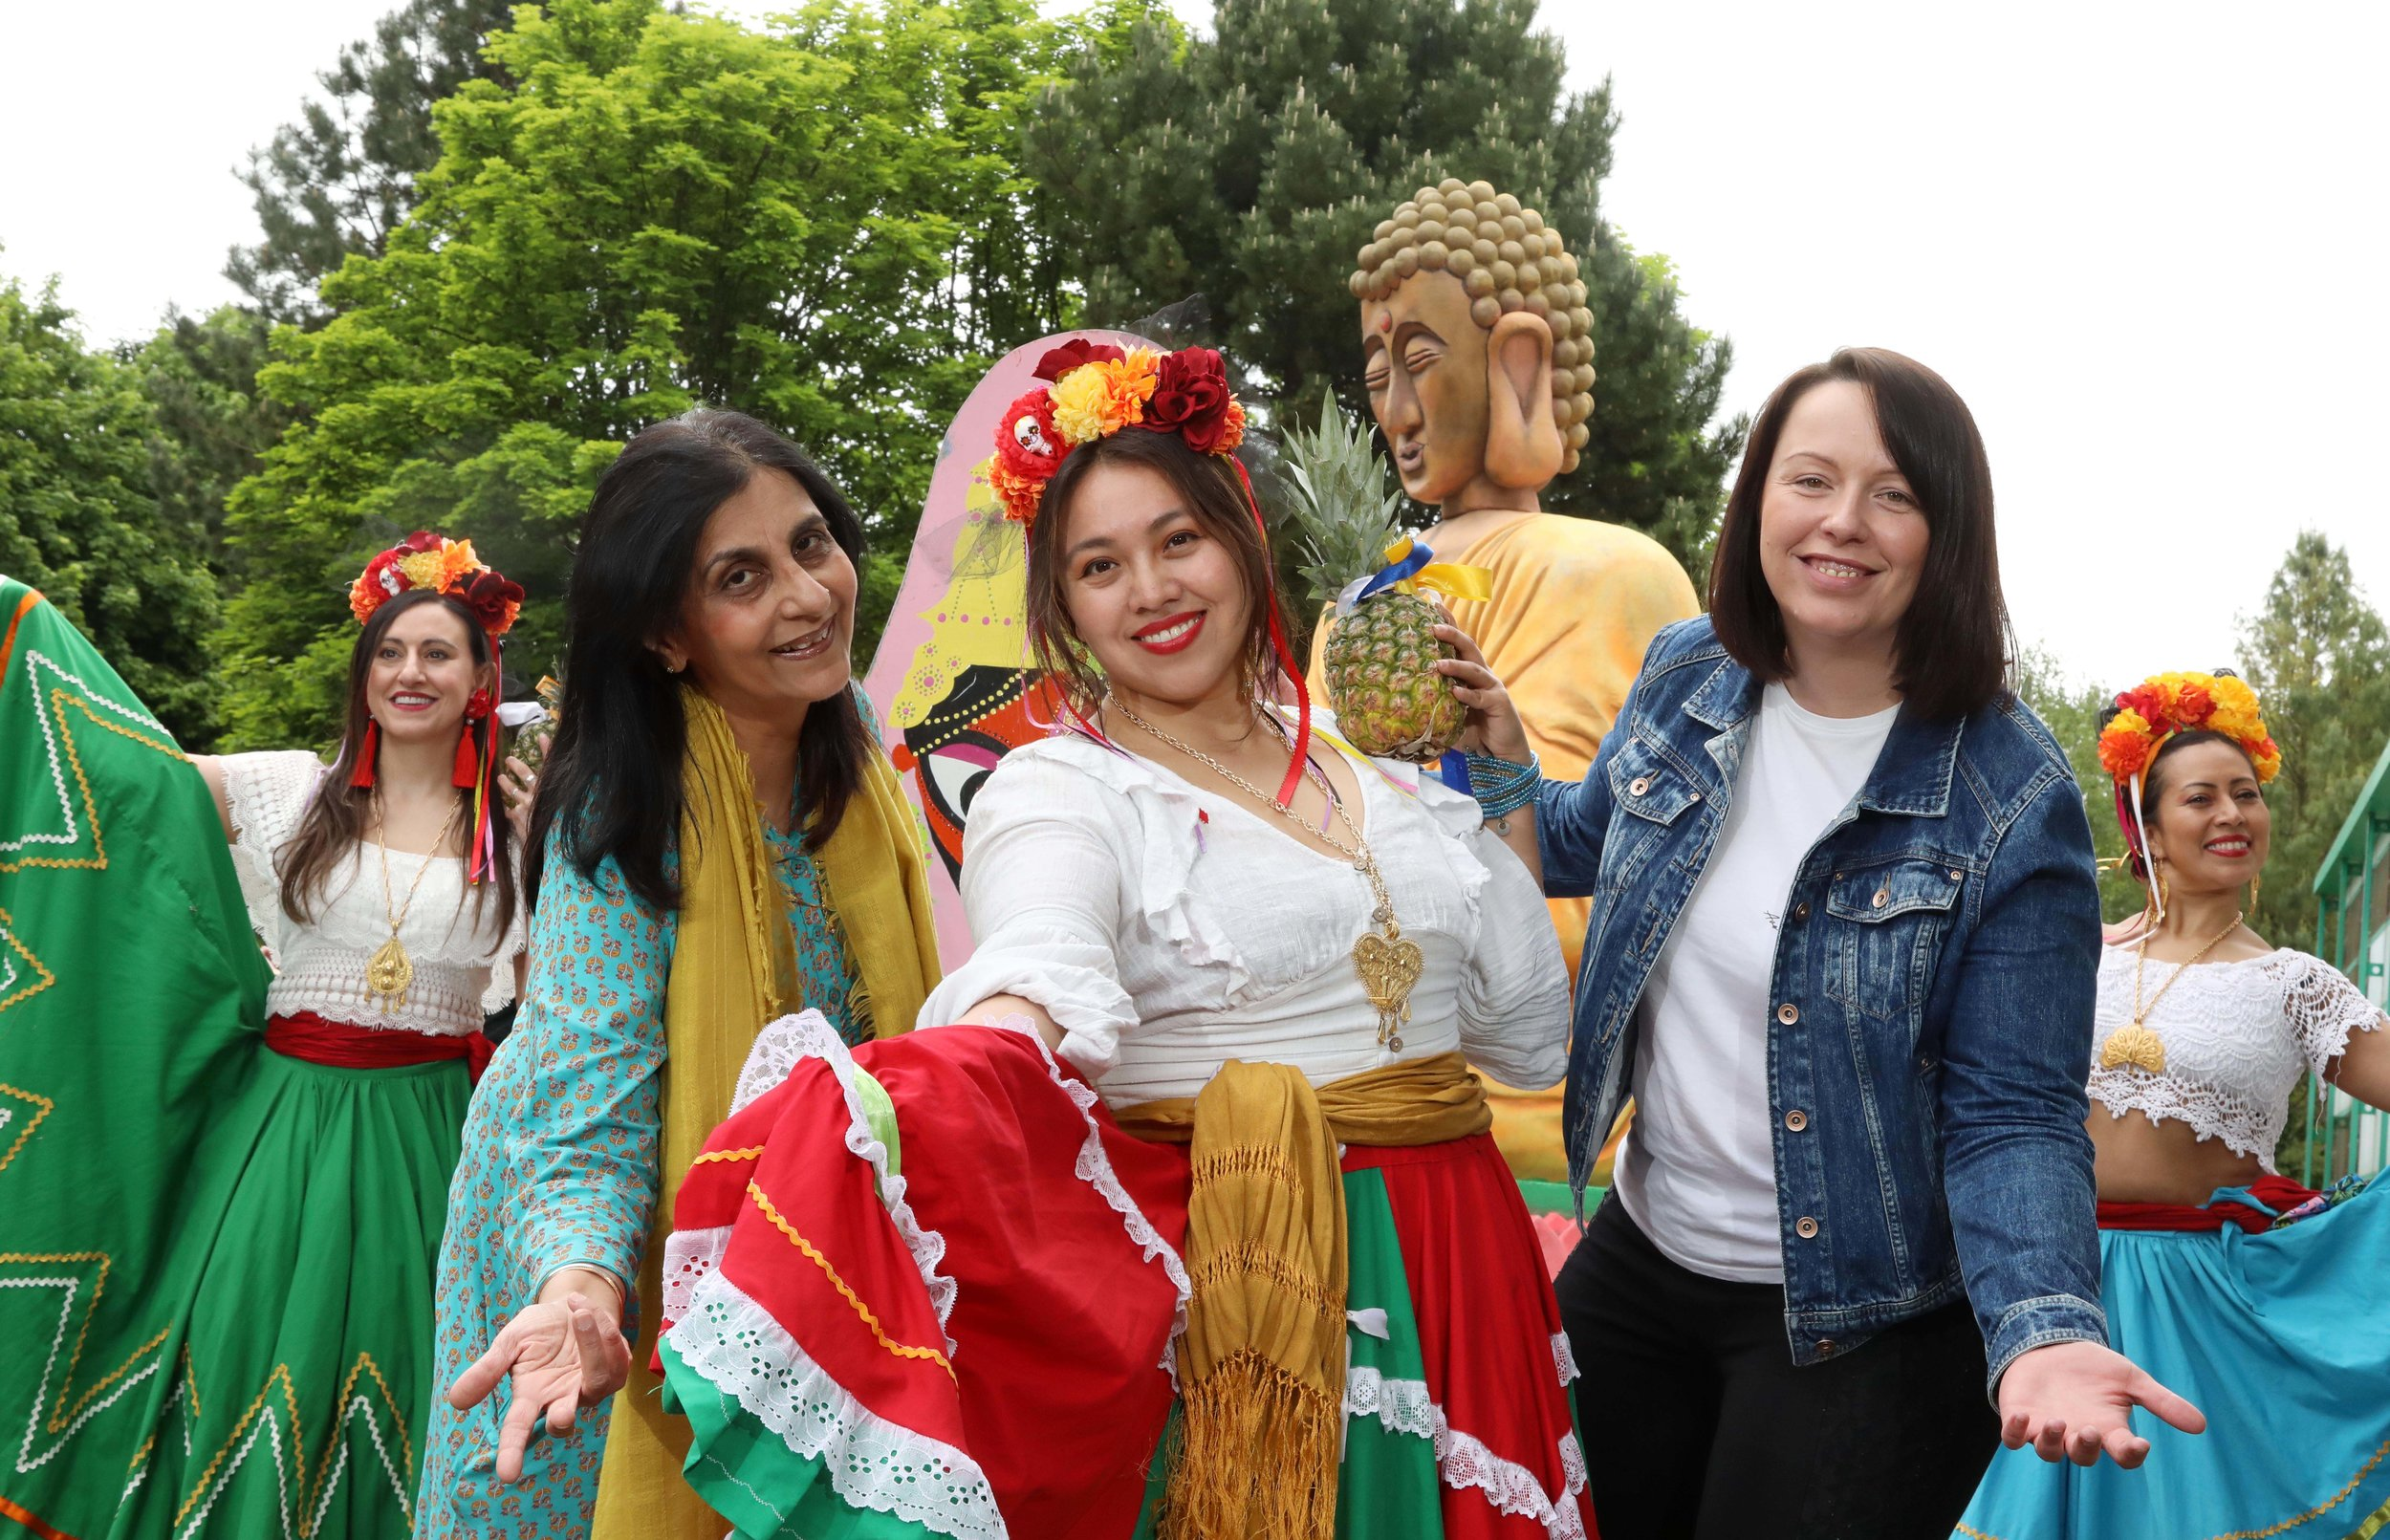 Sensata to back Belfast Mela 2019